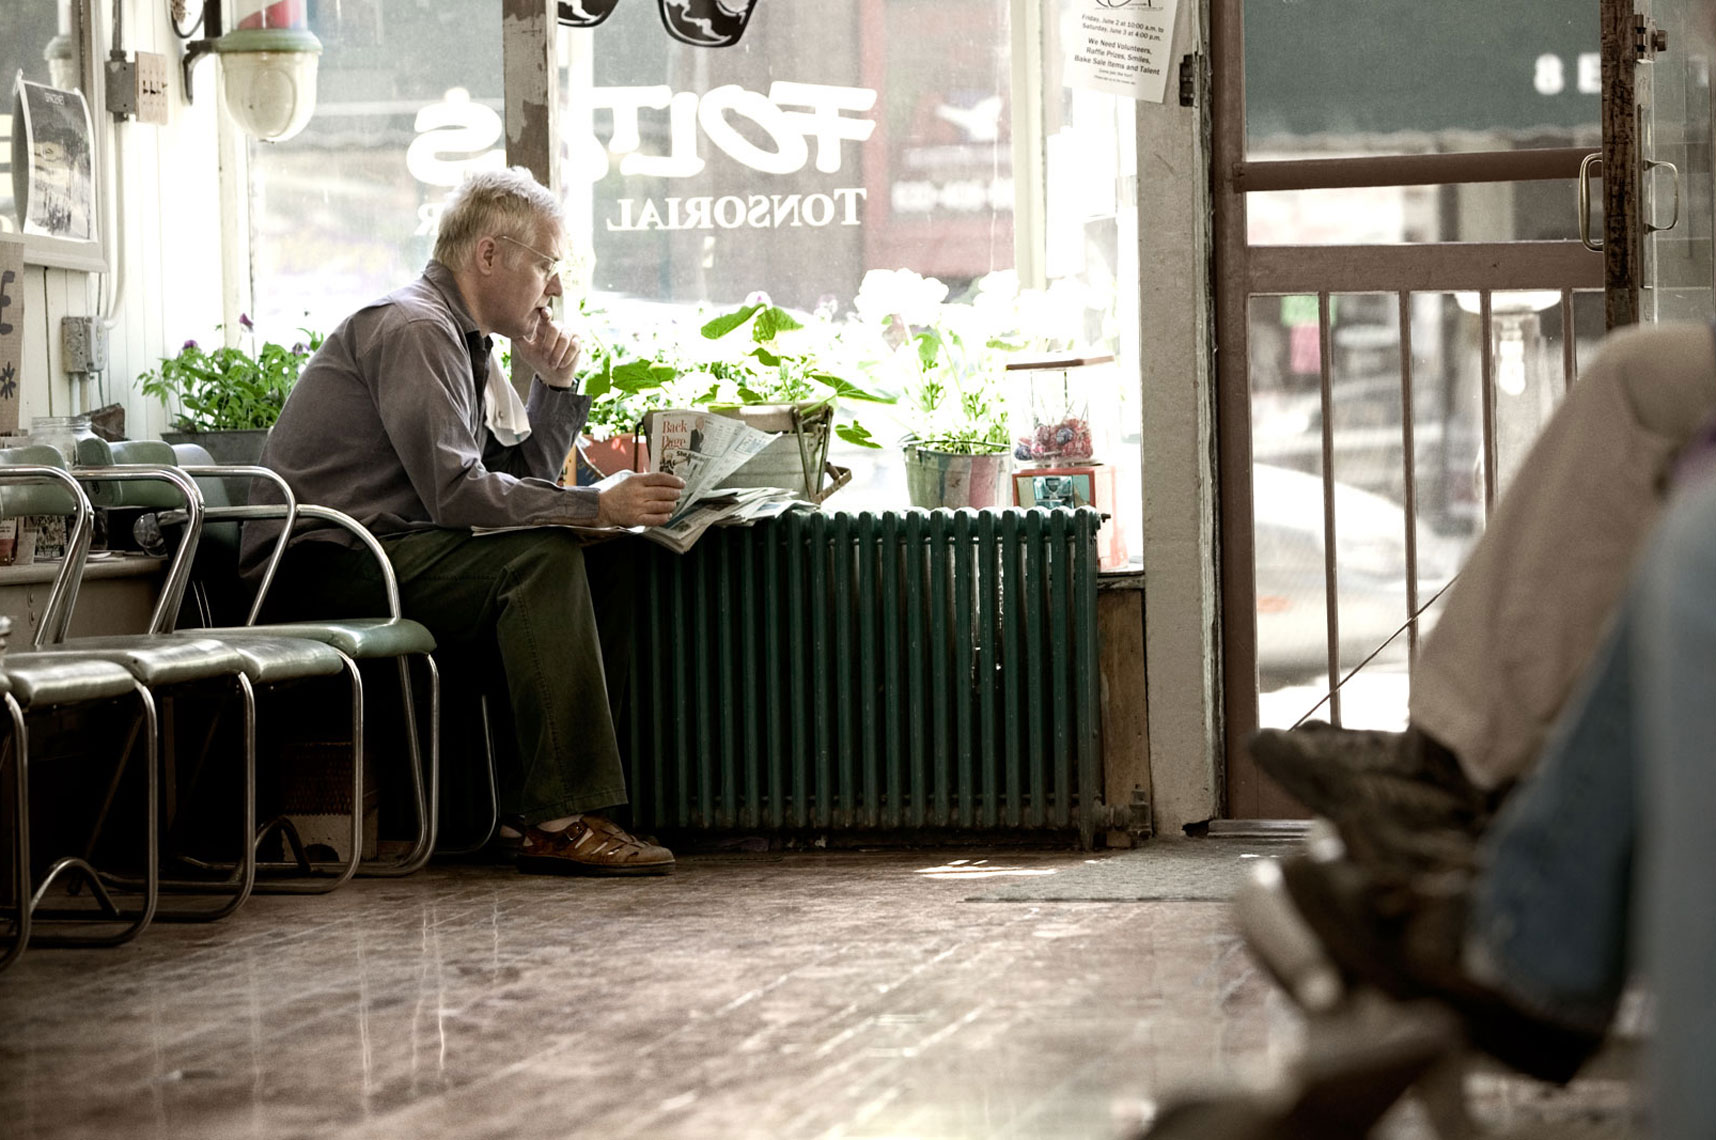 Barber reading a newspaper